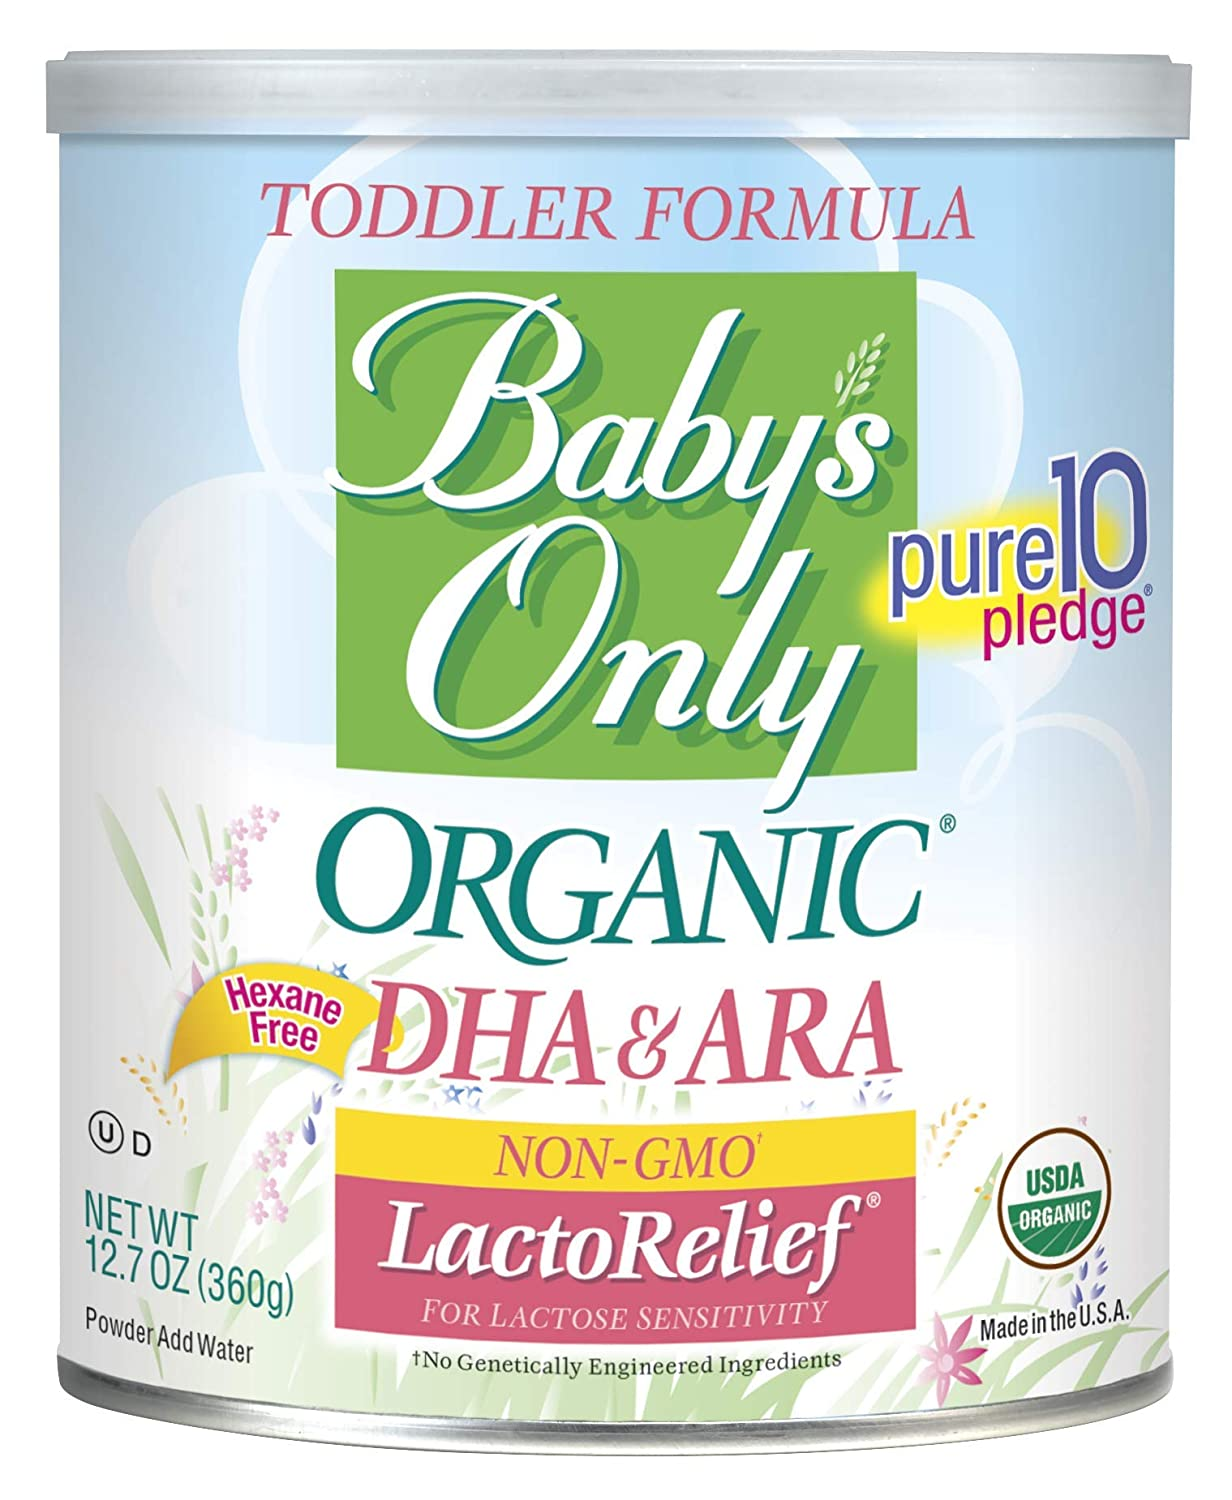 Baby's Only Organic Non-GMO LactoRelief with DHA & ARA Toddler Formula